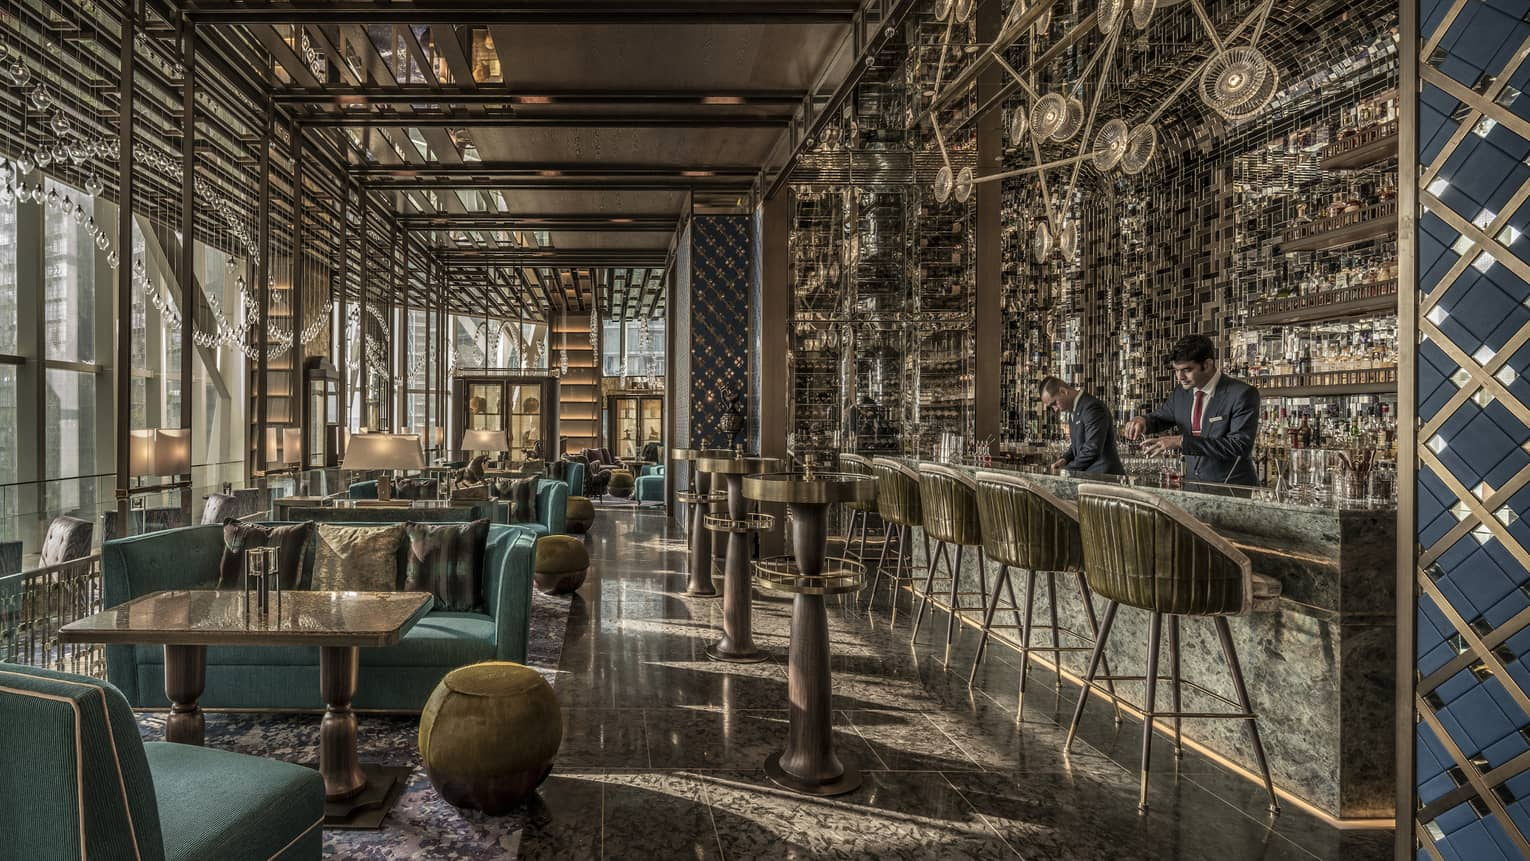 Bar Trigona's bartender makes a drink